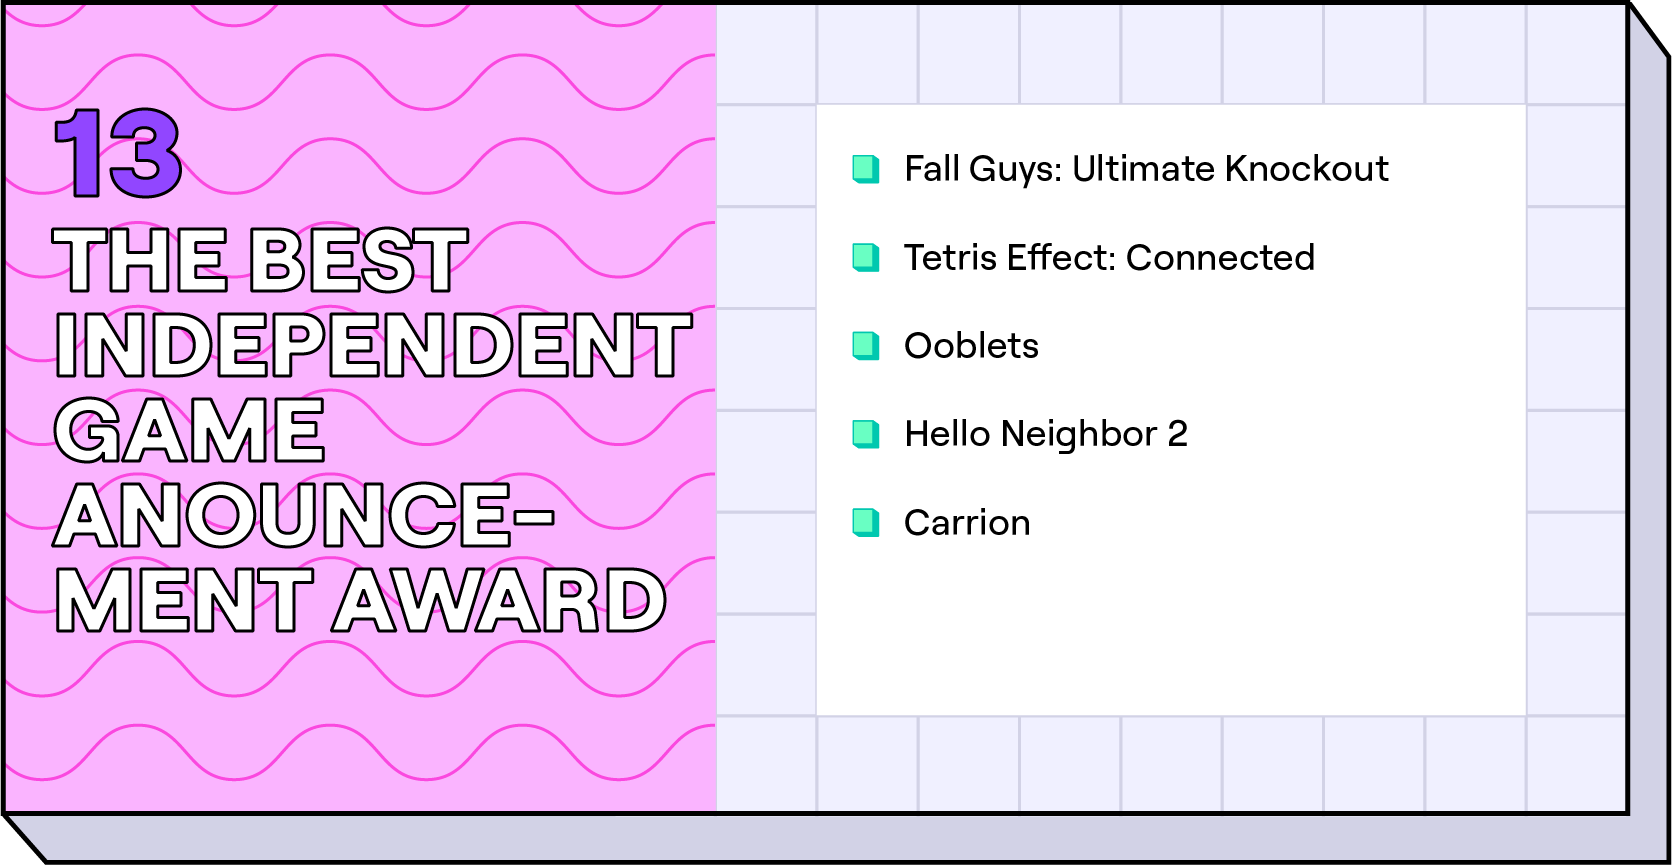 The Best Independent Game Announcement Award